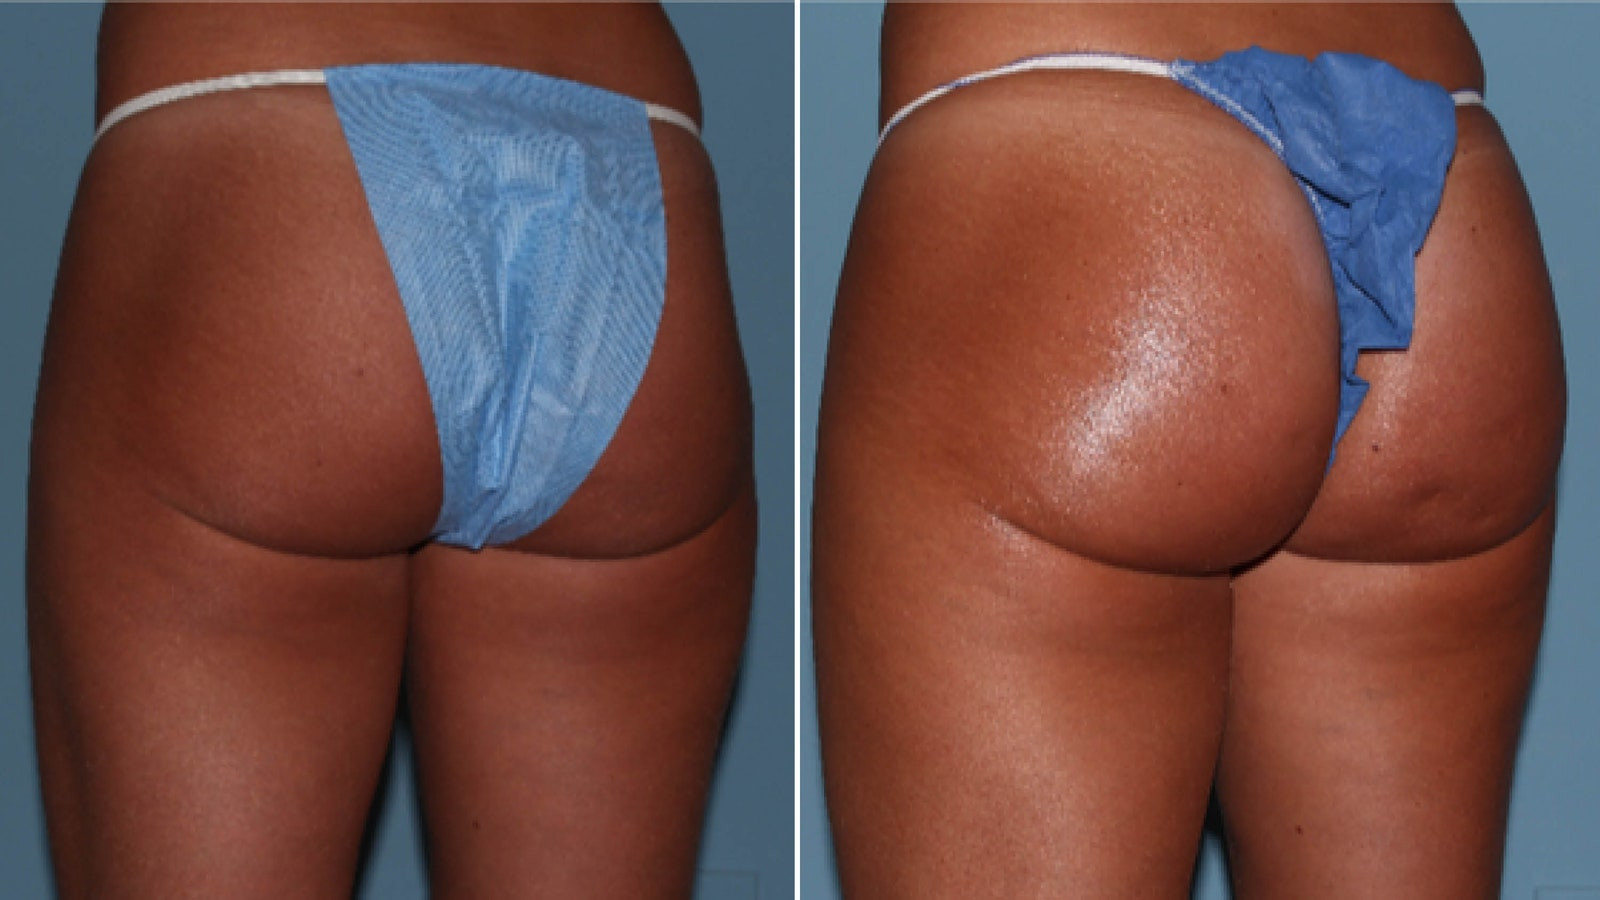 butt-lift-before-after-photos.jpg